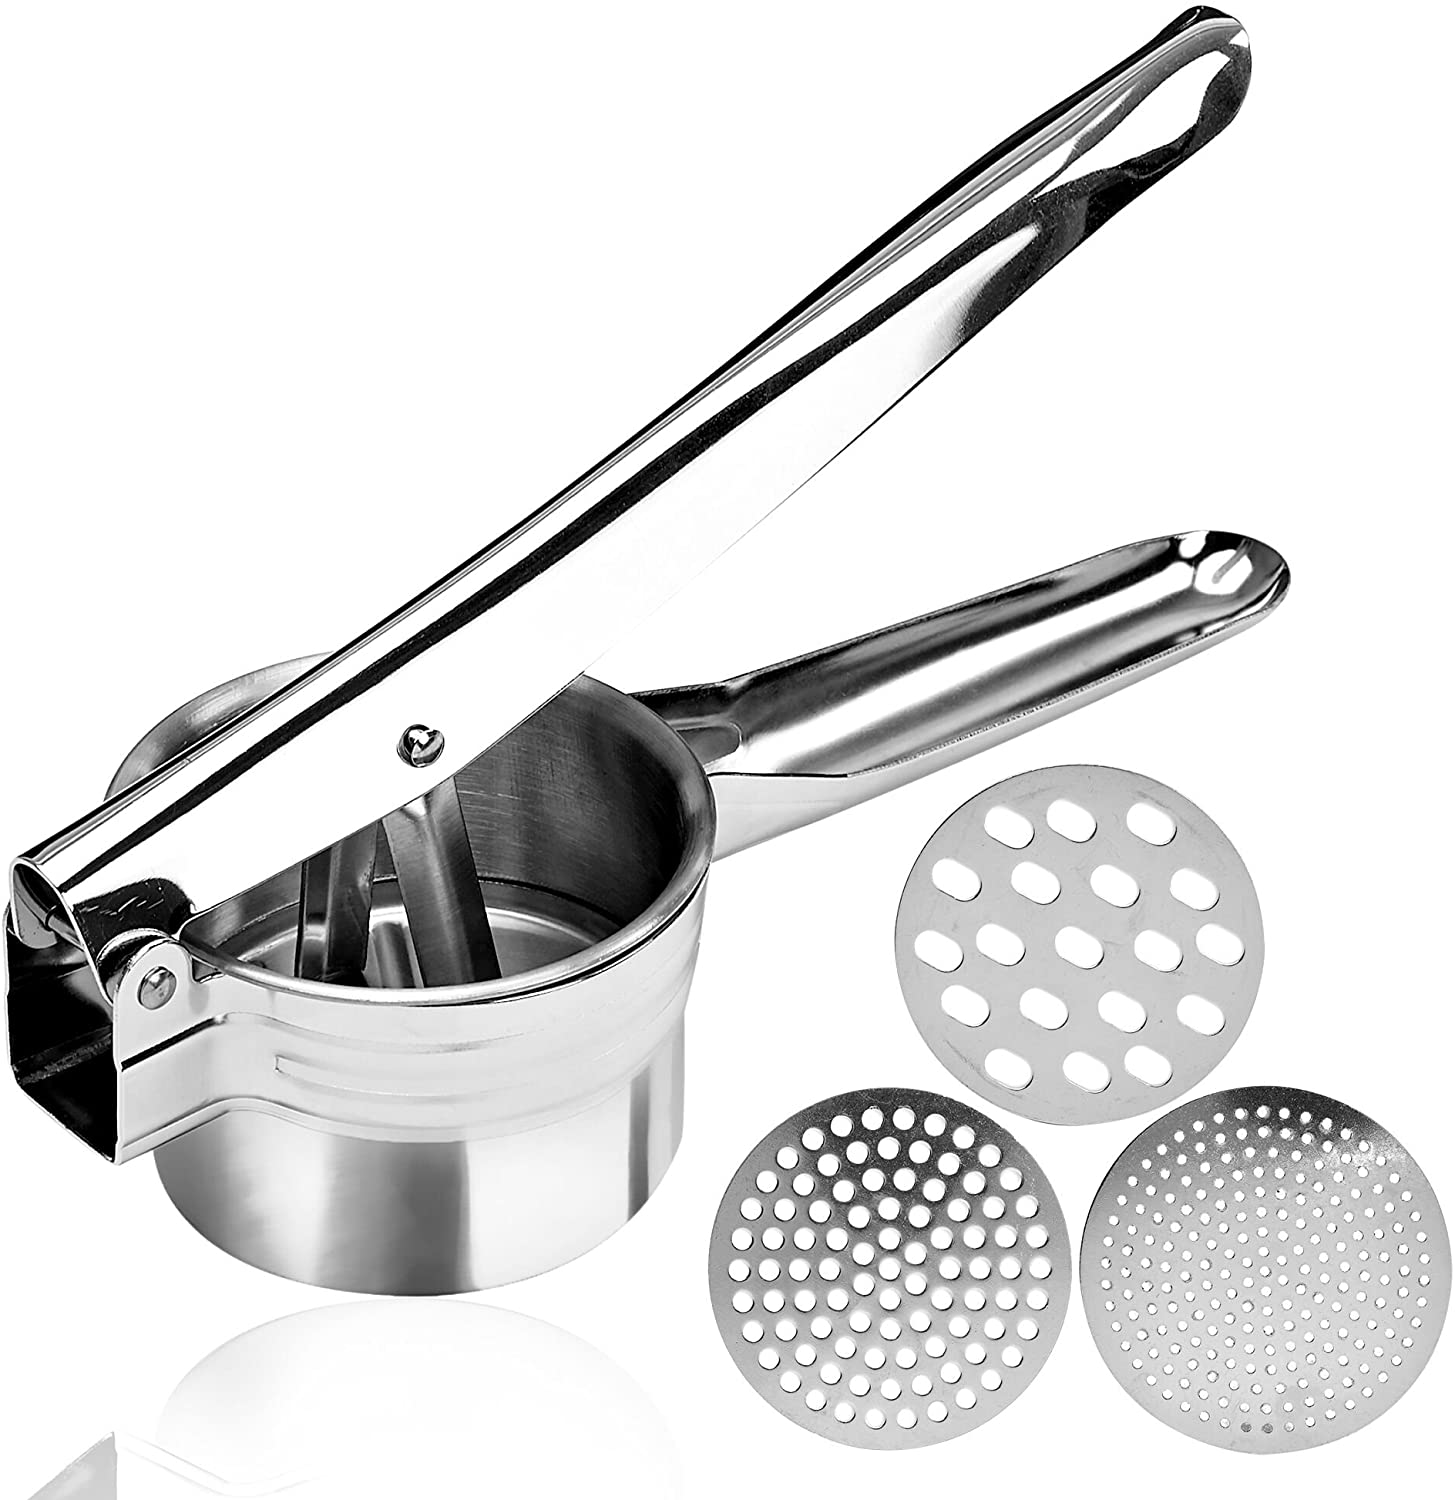 Manual Masher for Fluffy Mashed Potatoes Fruits and More- 3 Interchangeable Discs for super Fine Vegetables Medium Stainless Steel Potato Ricer with Ultra Sharp Vegetable Peeler and Coarse